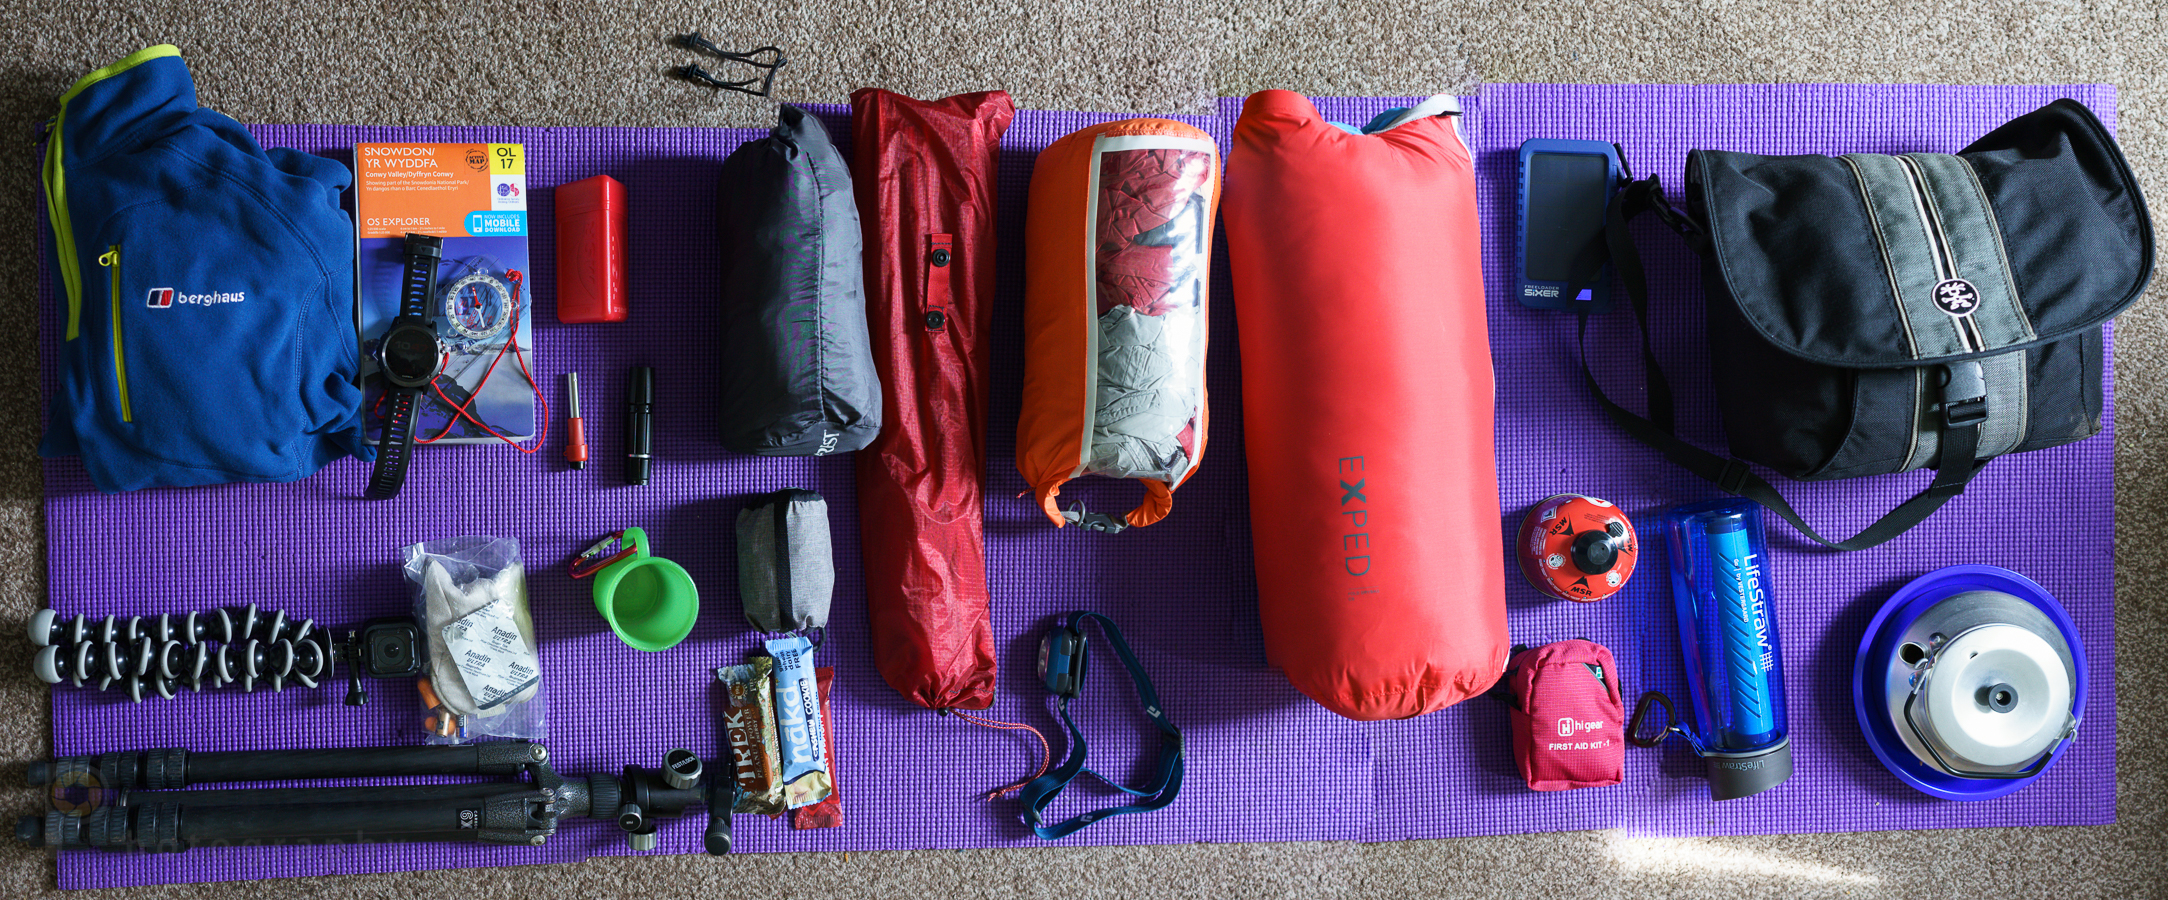 My typical backpacking / wild-camping gear for a nights outing. Some of the gear is now retired or replaced with something lighter or better performing.